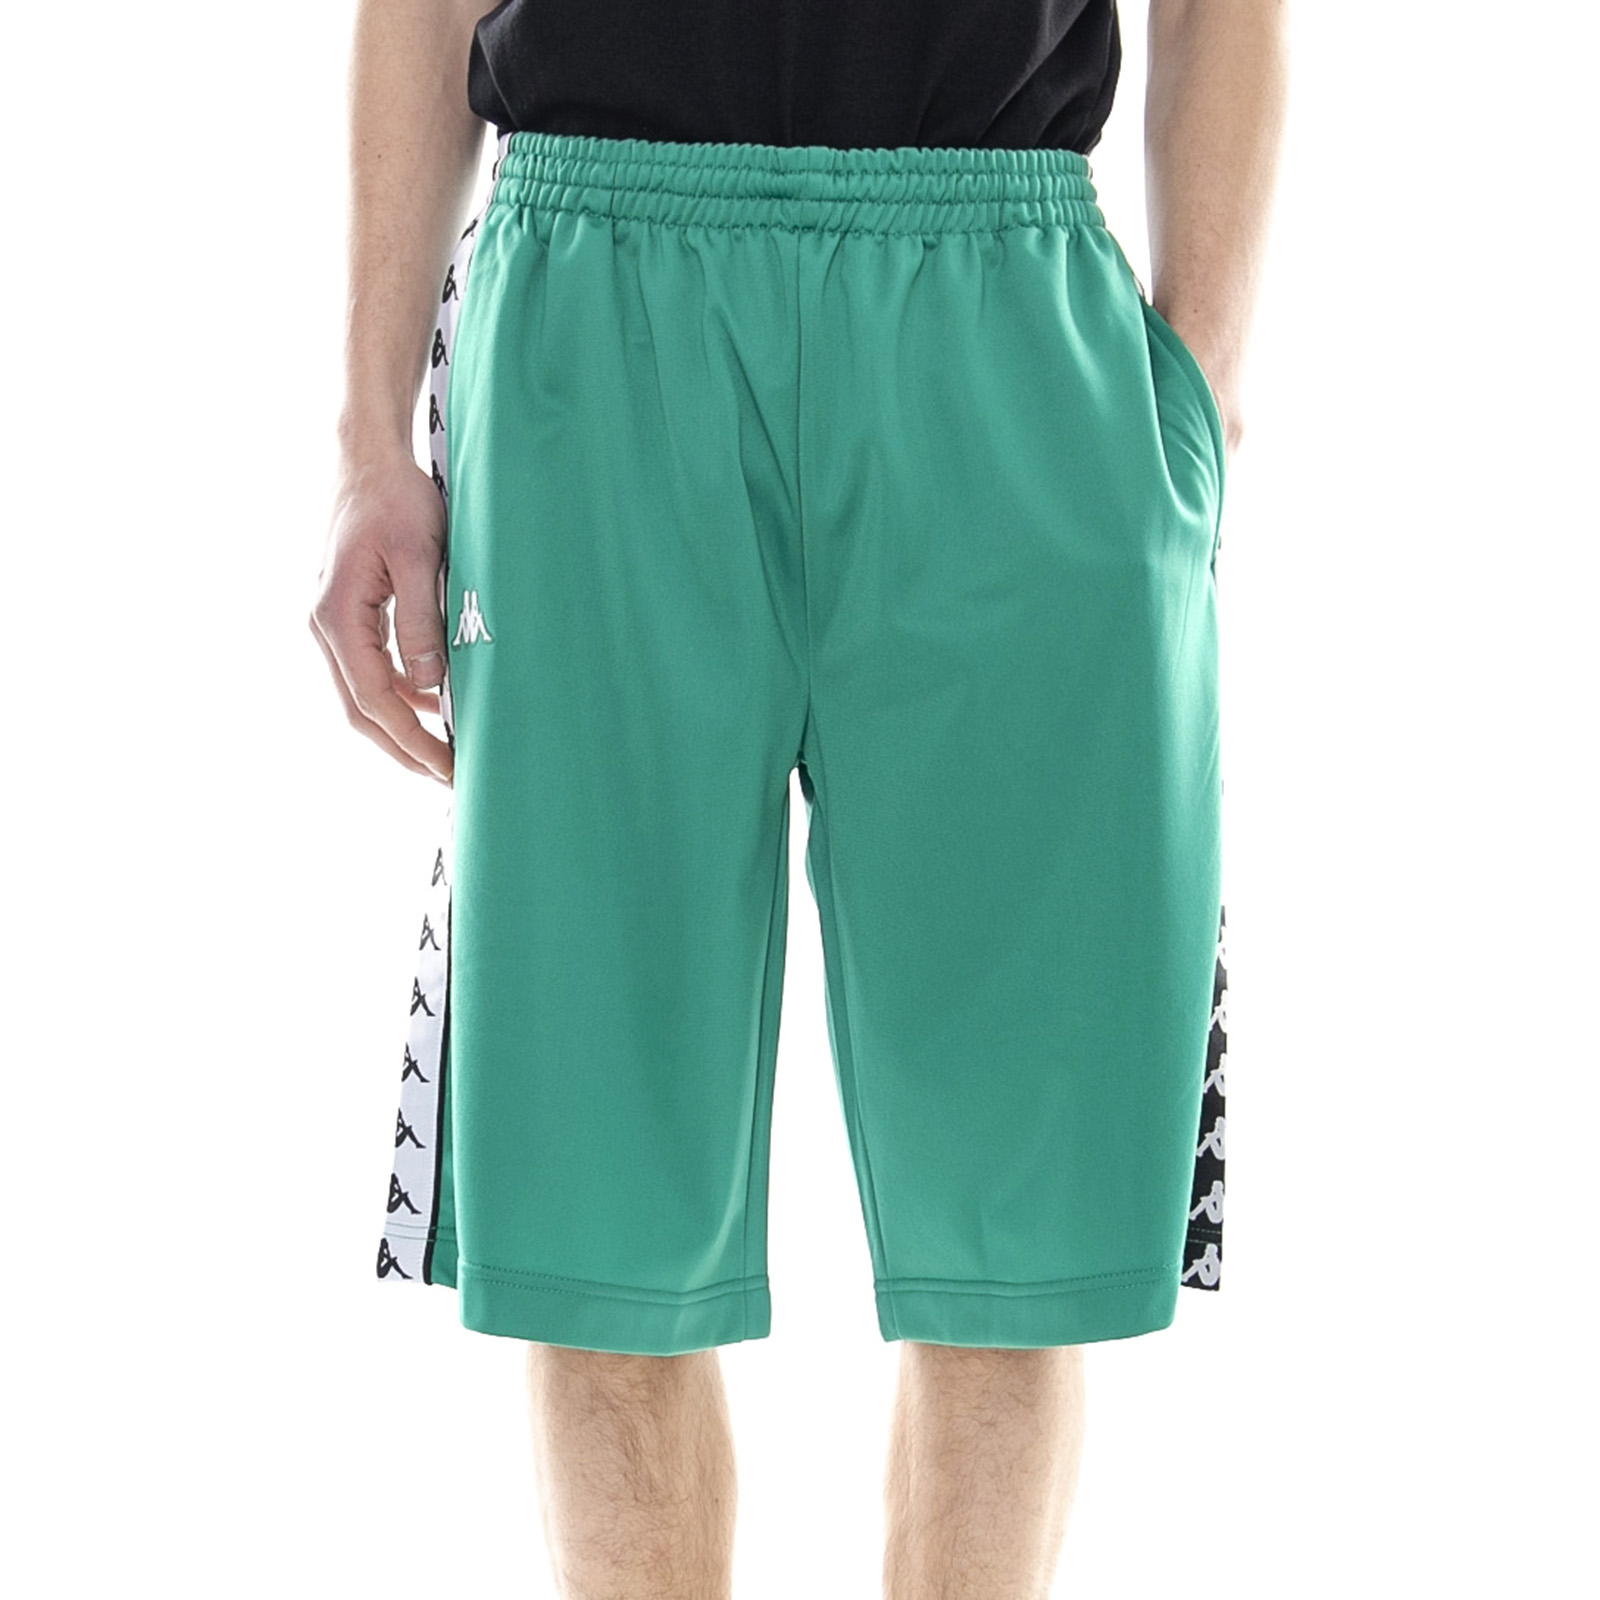 205234ae Details about Kappa 222 Band Treadwell Green/Black/White - Shorts/Bermuda  Mens Green